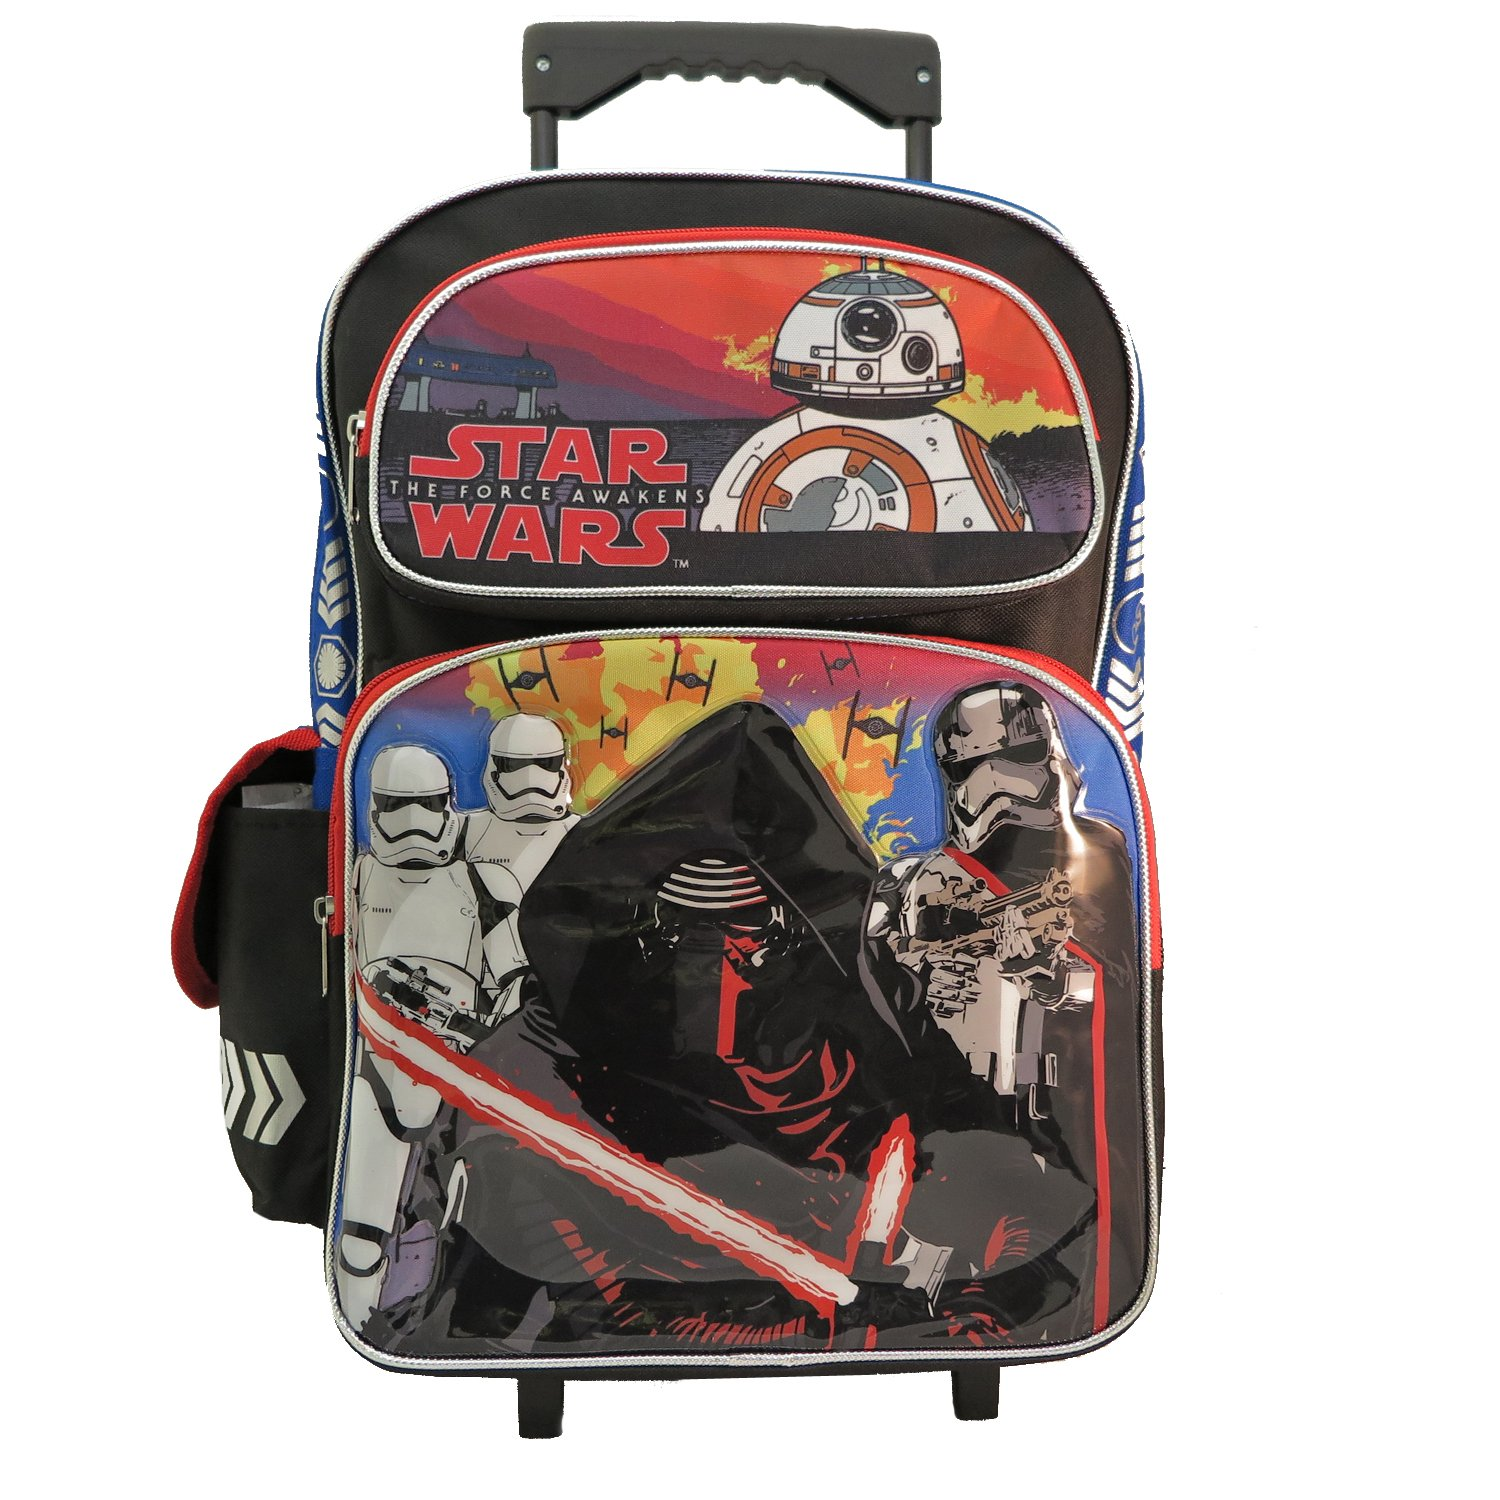 Not Machine Specific The Force Awakens Roller Backpack Ruz Star Wars